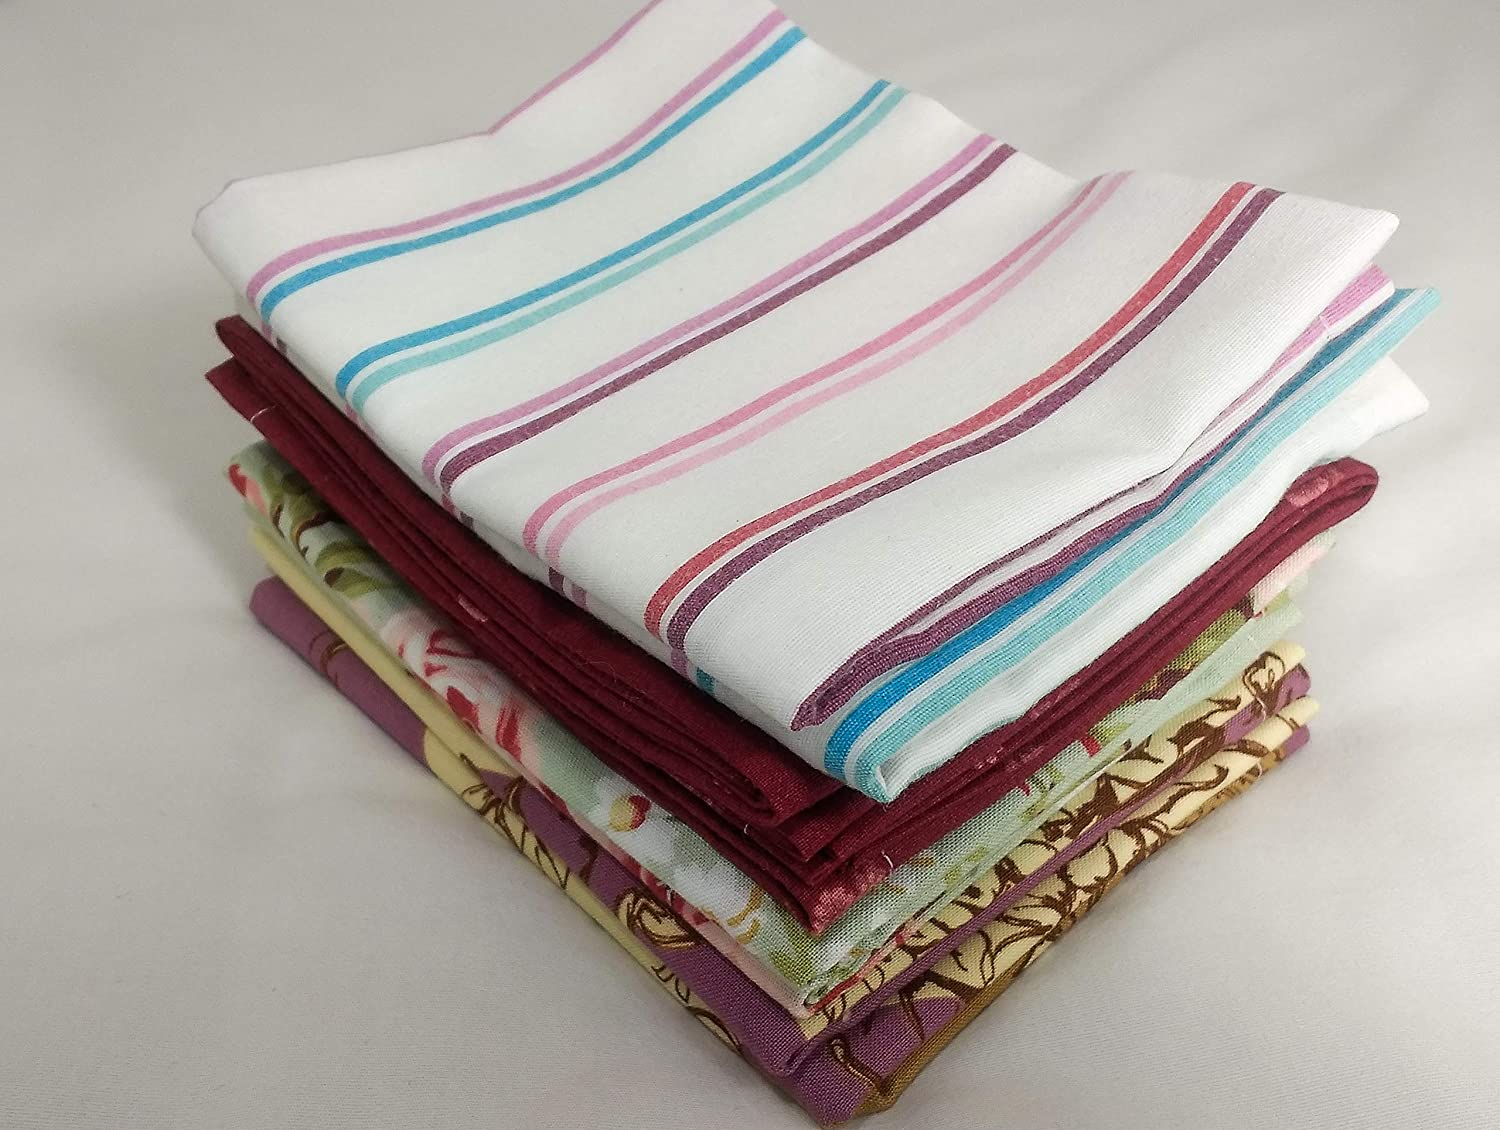 Eco Friendly Cloth Napkins Reusable Cloth Napkins Best Everyday Cloth Napkin Zero Waste Recycled Textiles Jewel Tone Mixed Patterns